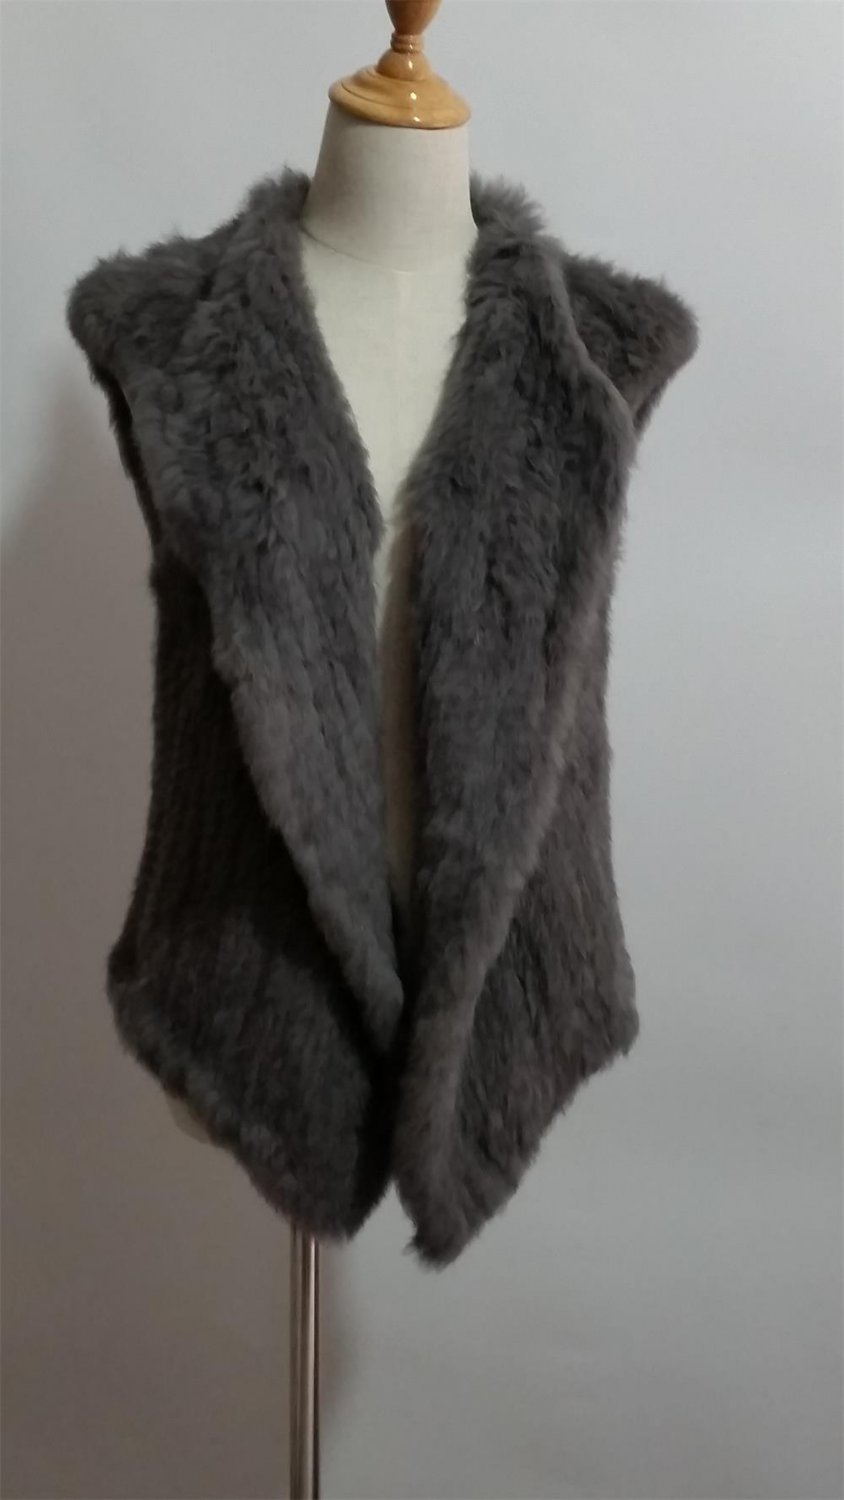 Dark Grey Knitted Rabbit Fur Vest Top Outwear